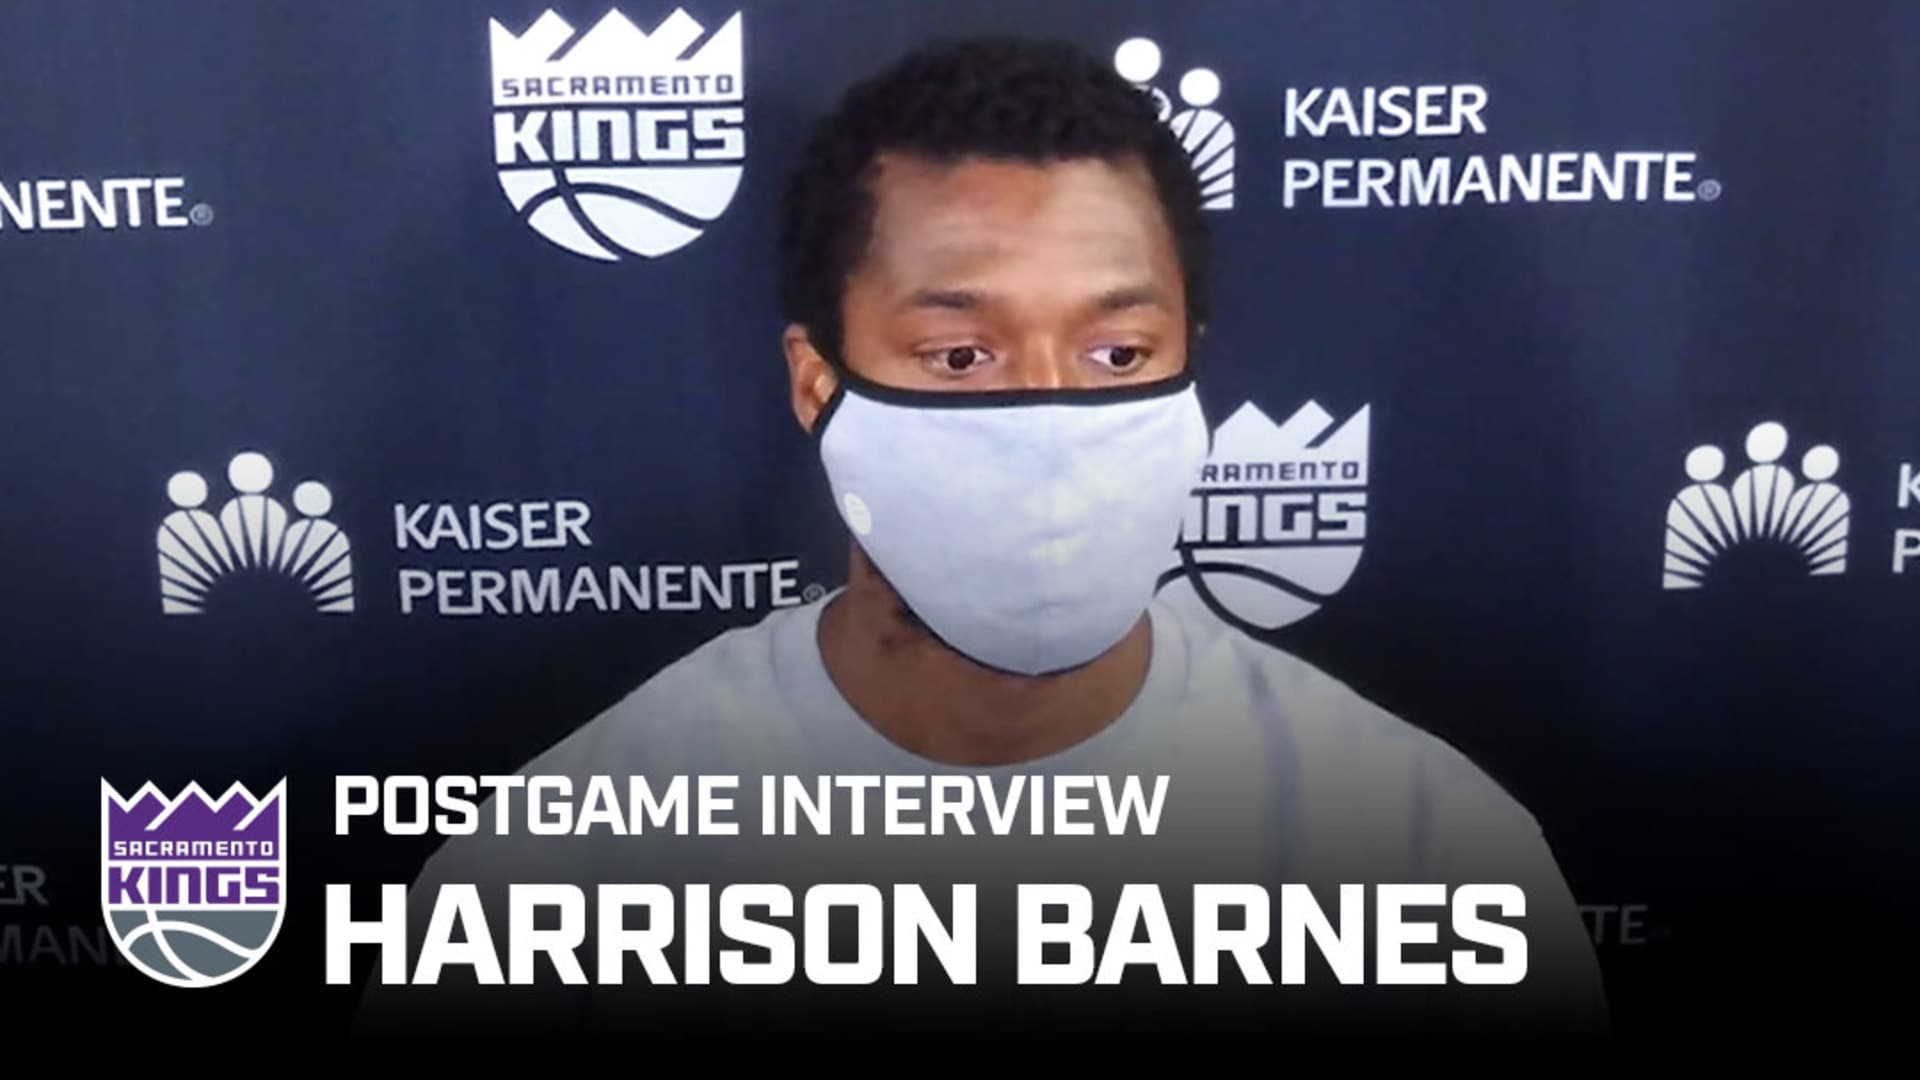 'It's About All of Us Taking Accountability' | Harrison Barnes Postgame Interview 8.7.20